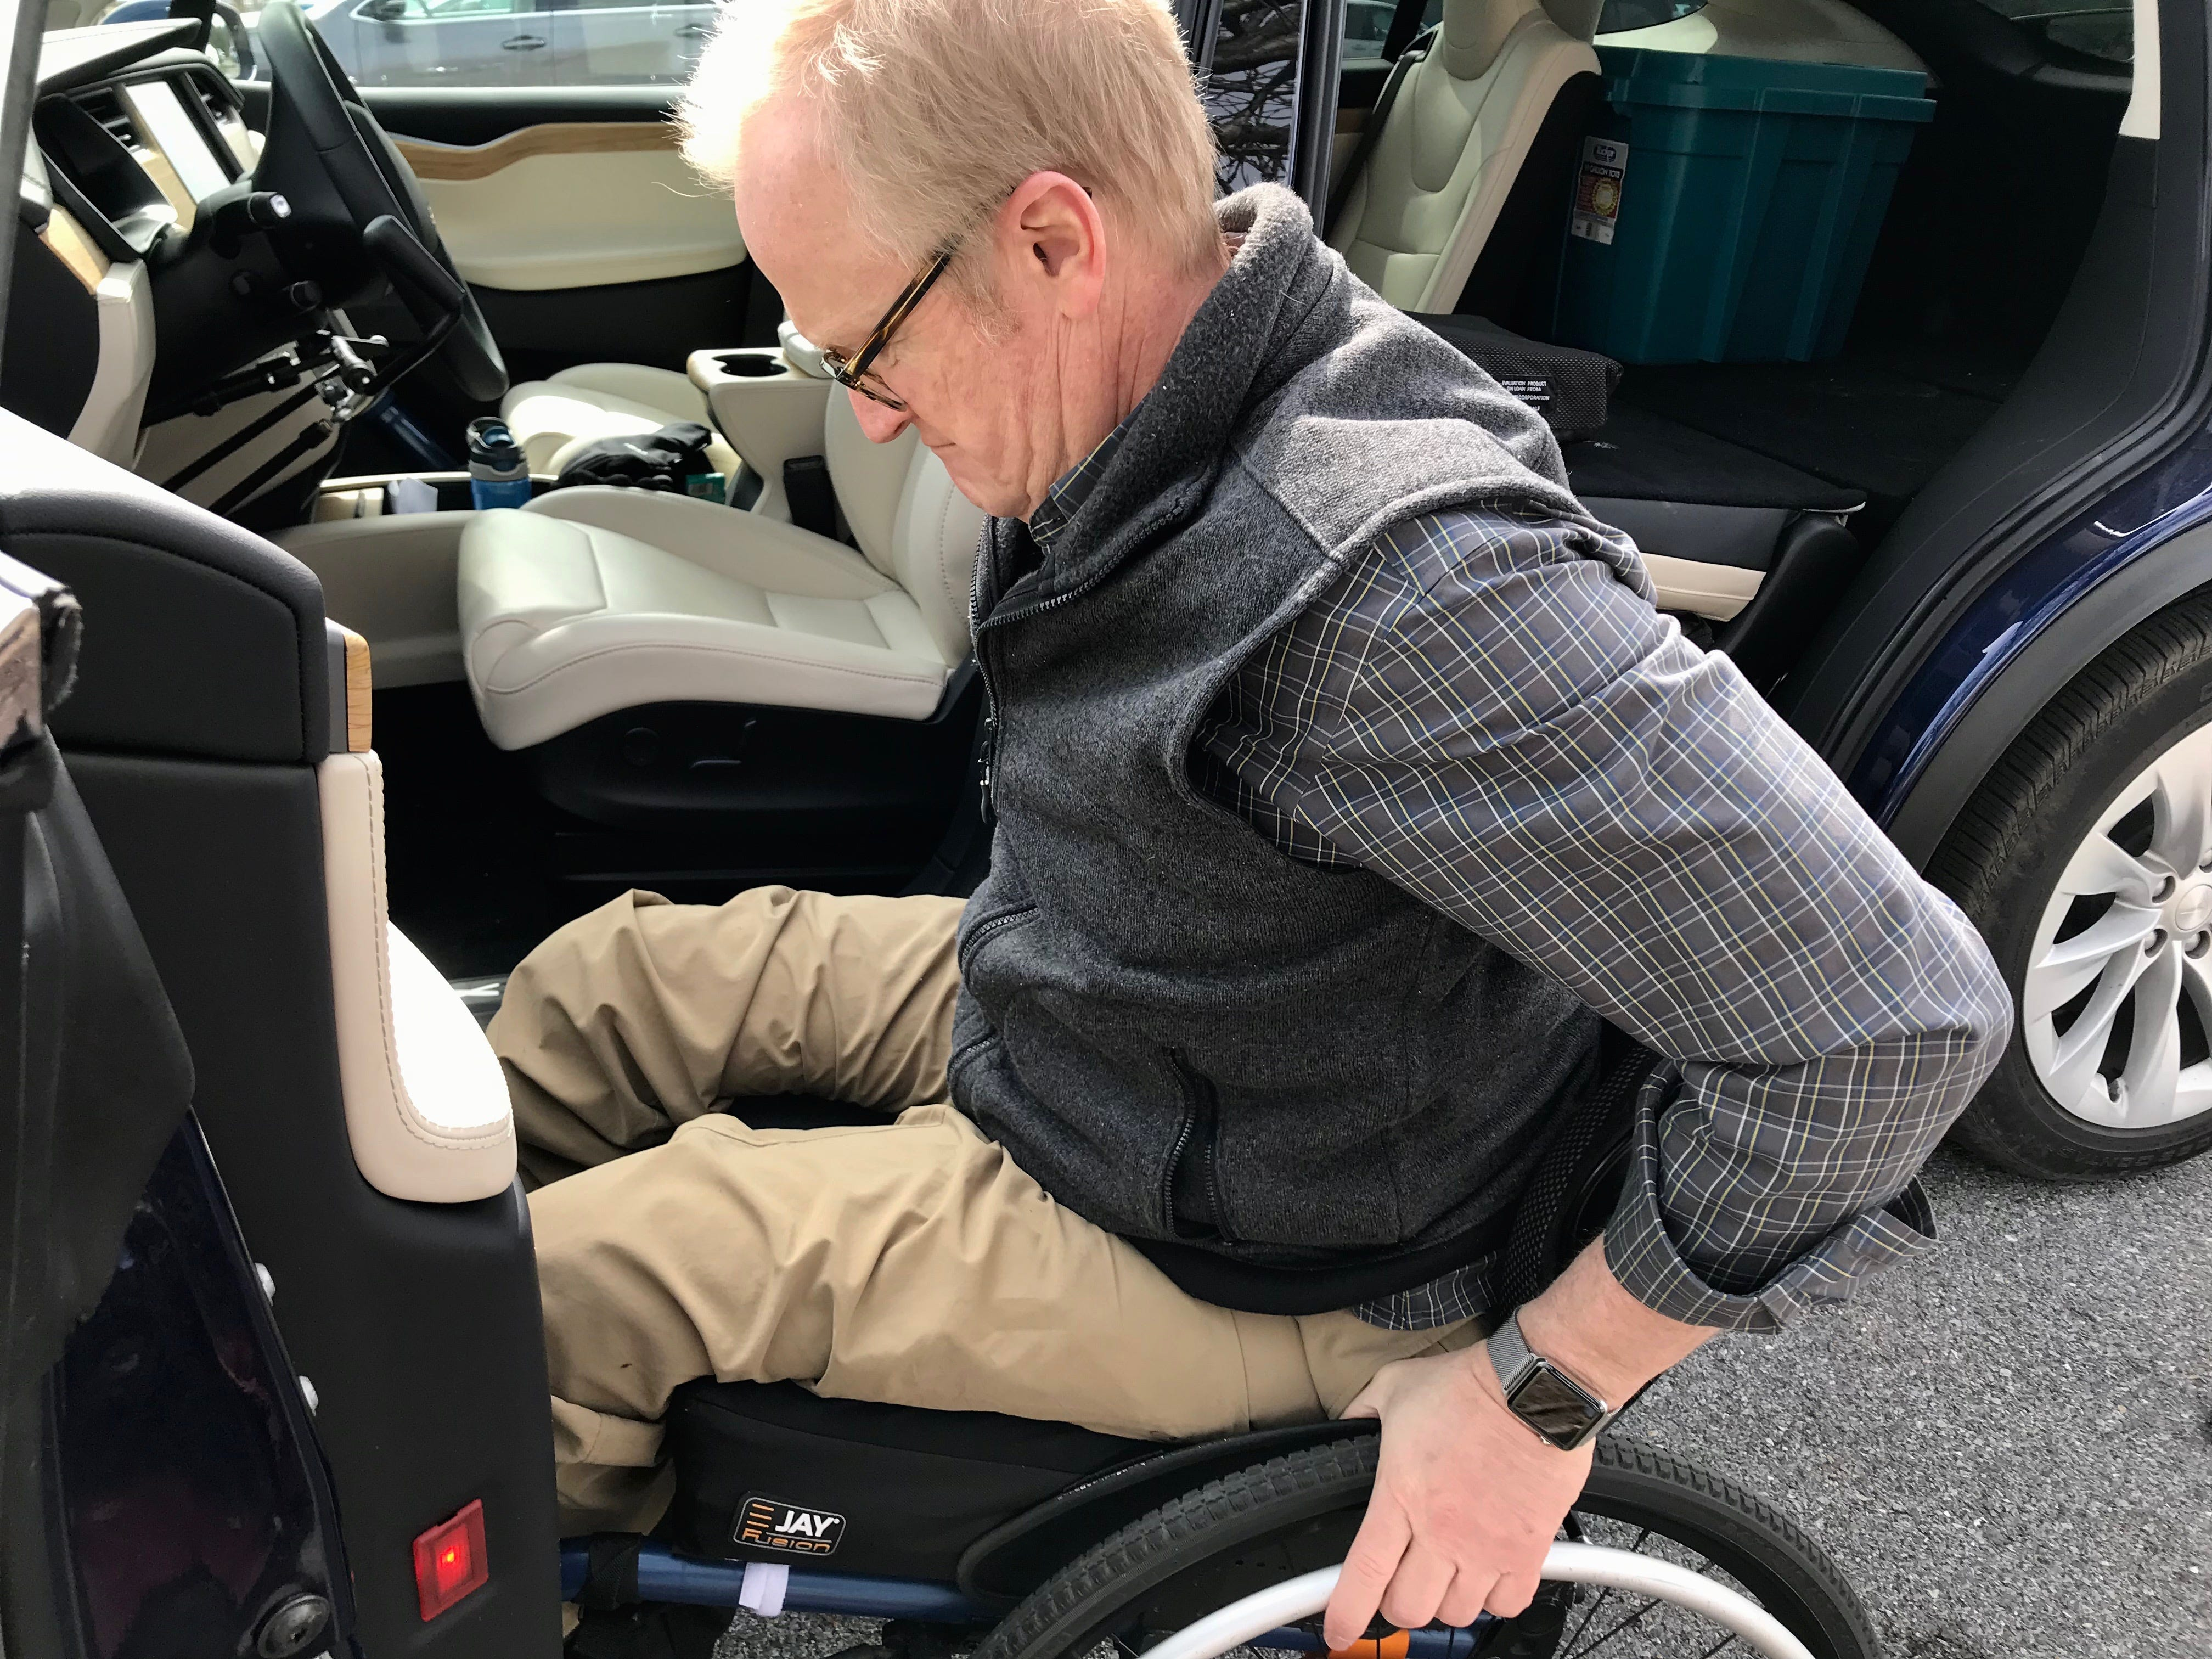 Dr. Robert Kyler receives physical and occupational therapies at Wilson Workforce and Rehabilitation Center in Fishersville. Photographed by his Tesla in the parking lot with Sonya Gasser, occupational therapist, on Wednesday, March 20, 2019.